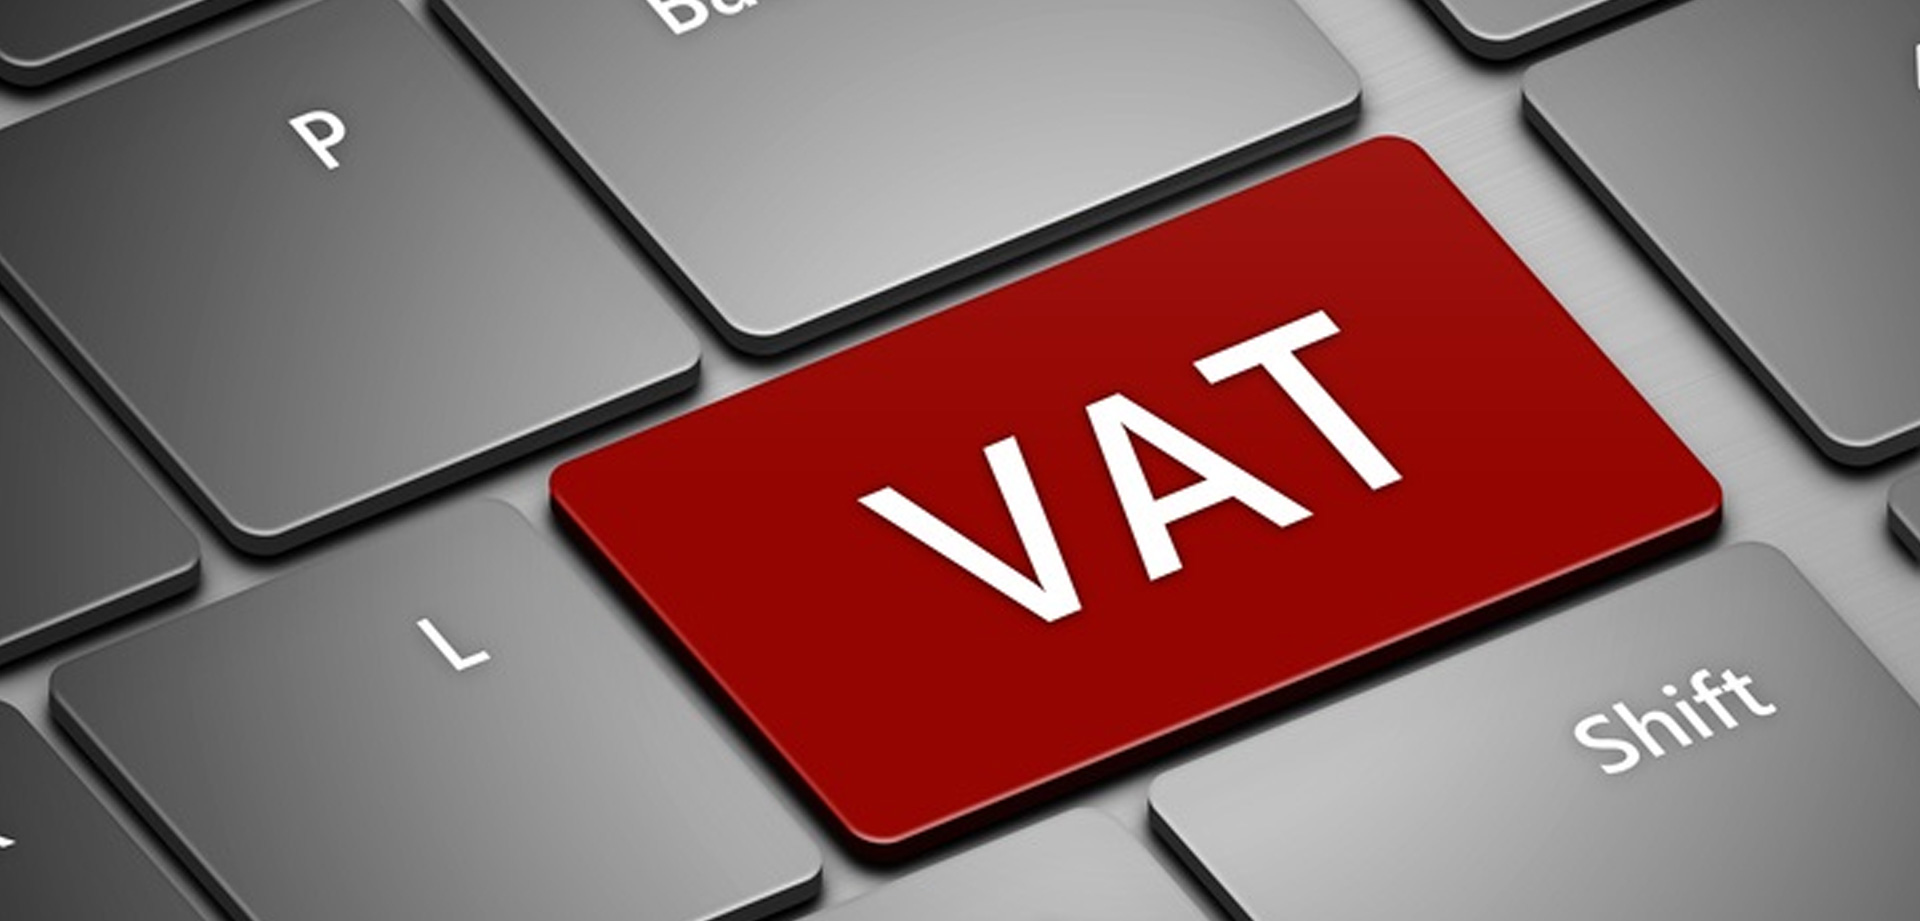 value added tax Value-added tax definition is - an incremental excise that is levied on the value added at each stage of the processing of a raw material or the production and distribution of a commodity and that typically has the impact of a sales tax on the ultimate consumer.